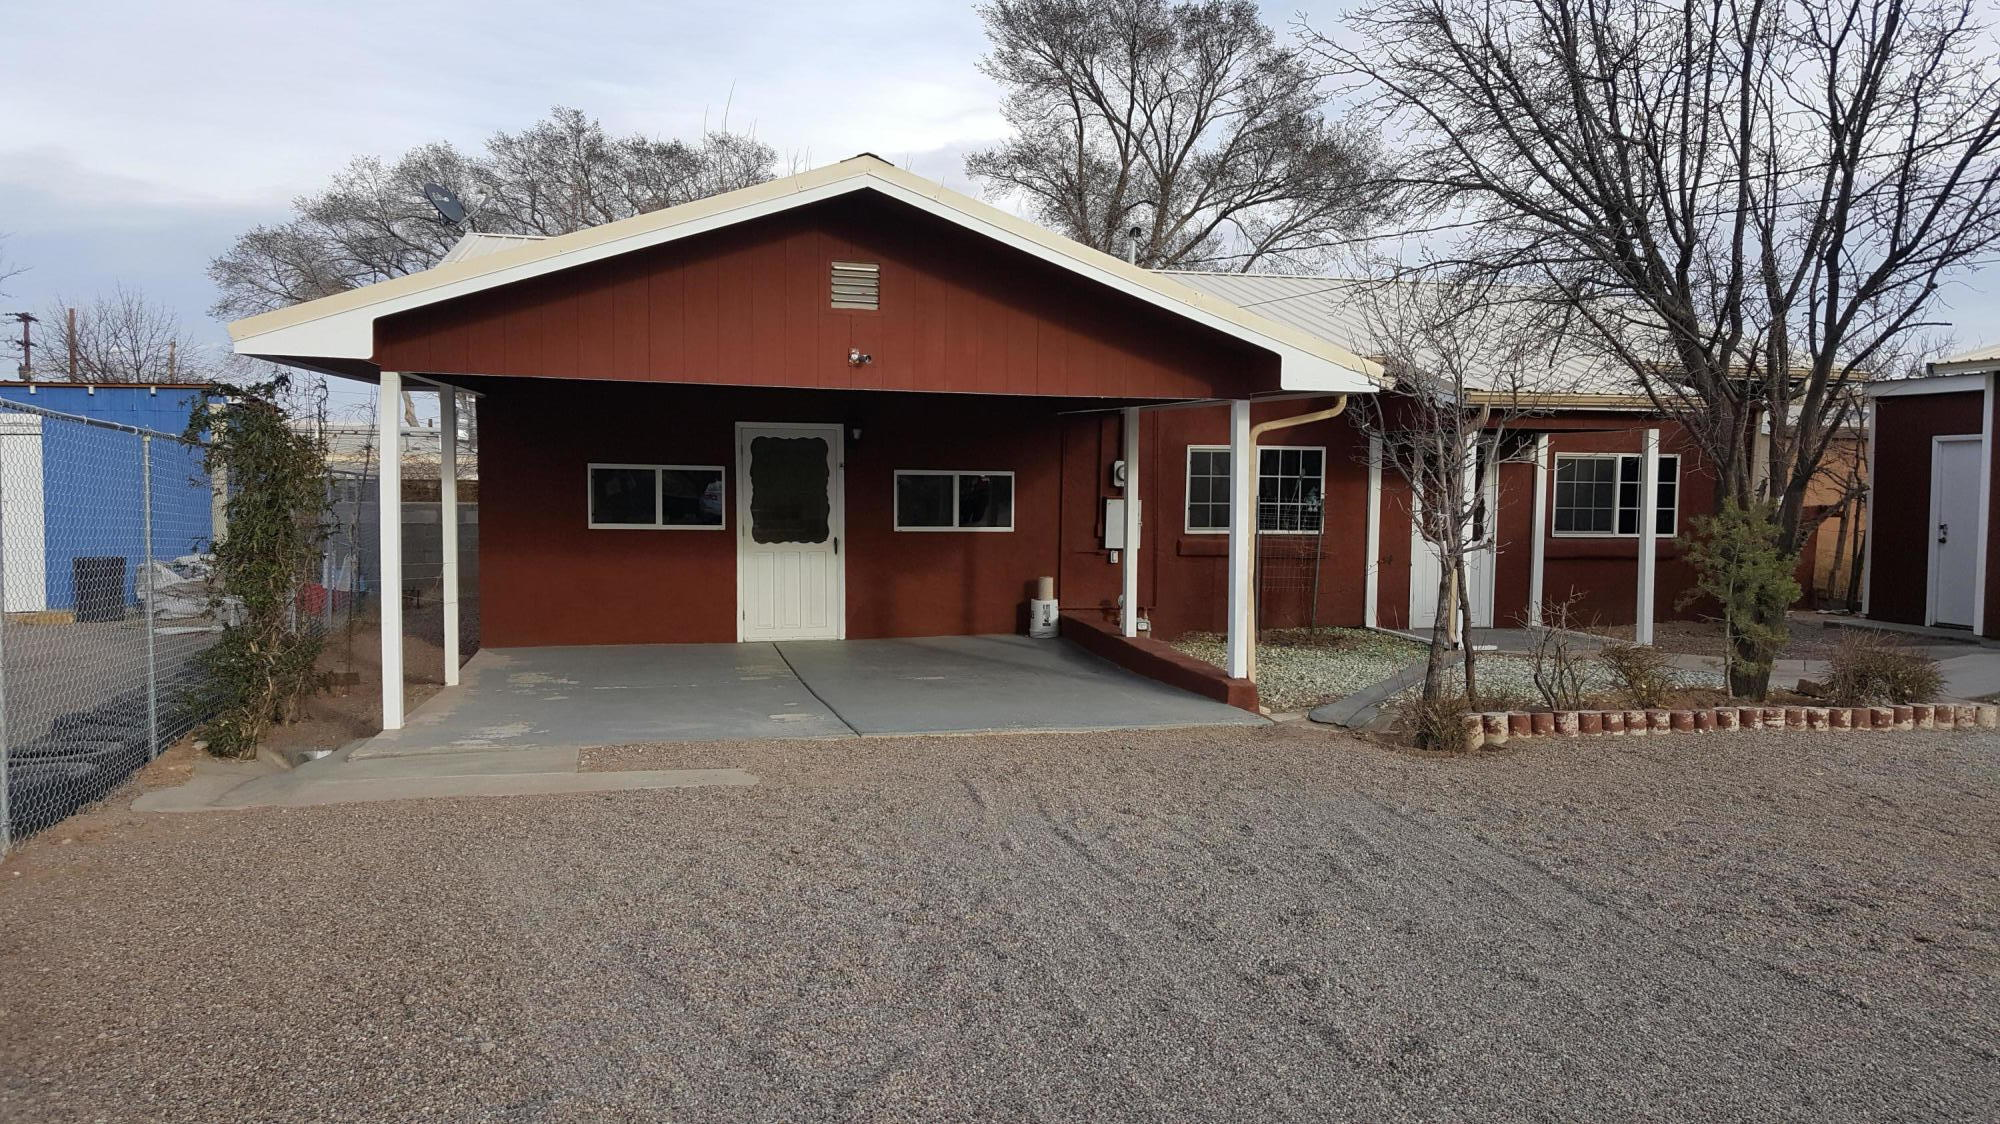 This well kept home is centrally located. Home has two bedrooms and one full bath.Large kitchen with new cabinets and counter-tops. A nice conveniently located carport outside the kitchen. Optional workshop or income producing studio. This yard is xeriscape and home is ready for immediate occupancy.